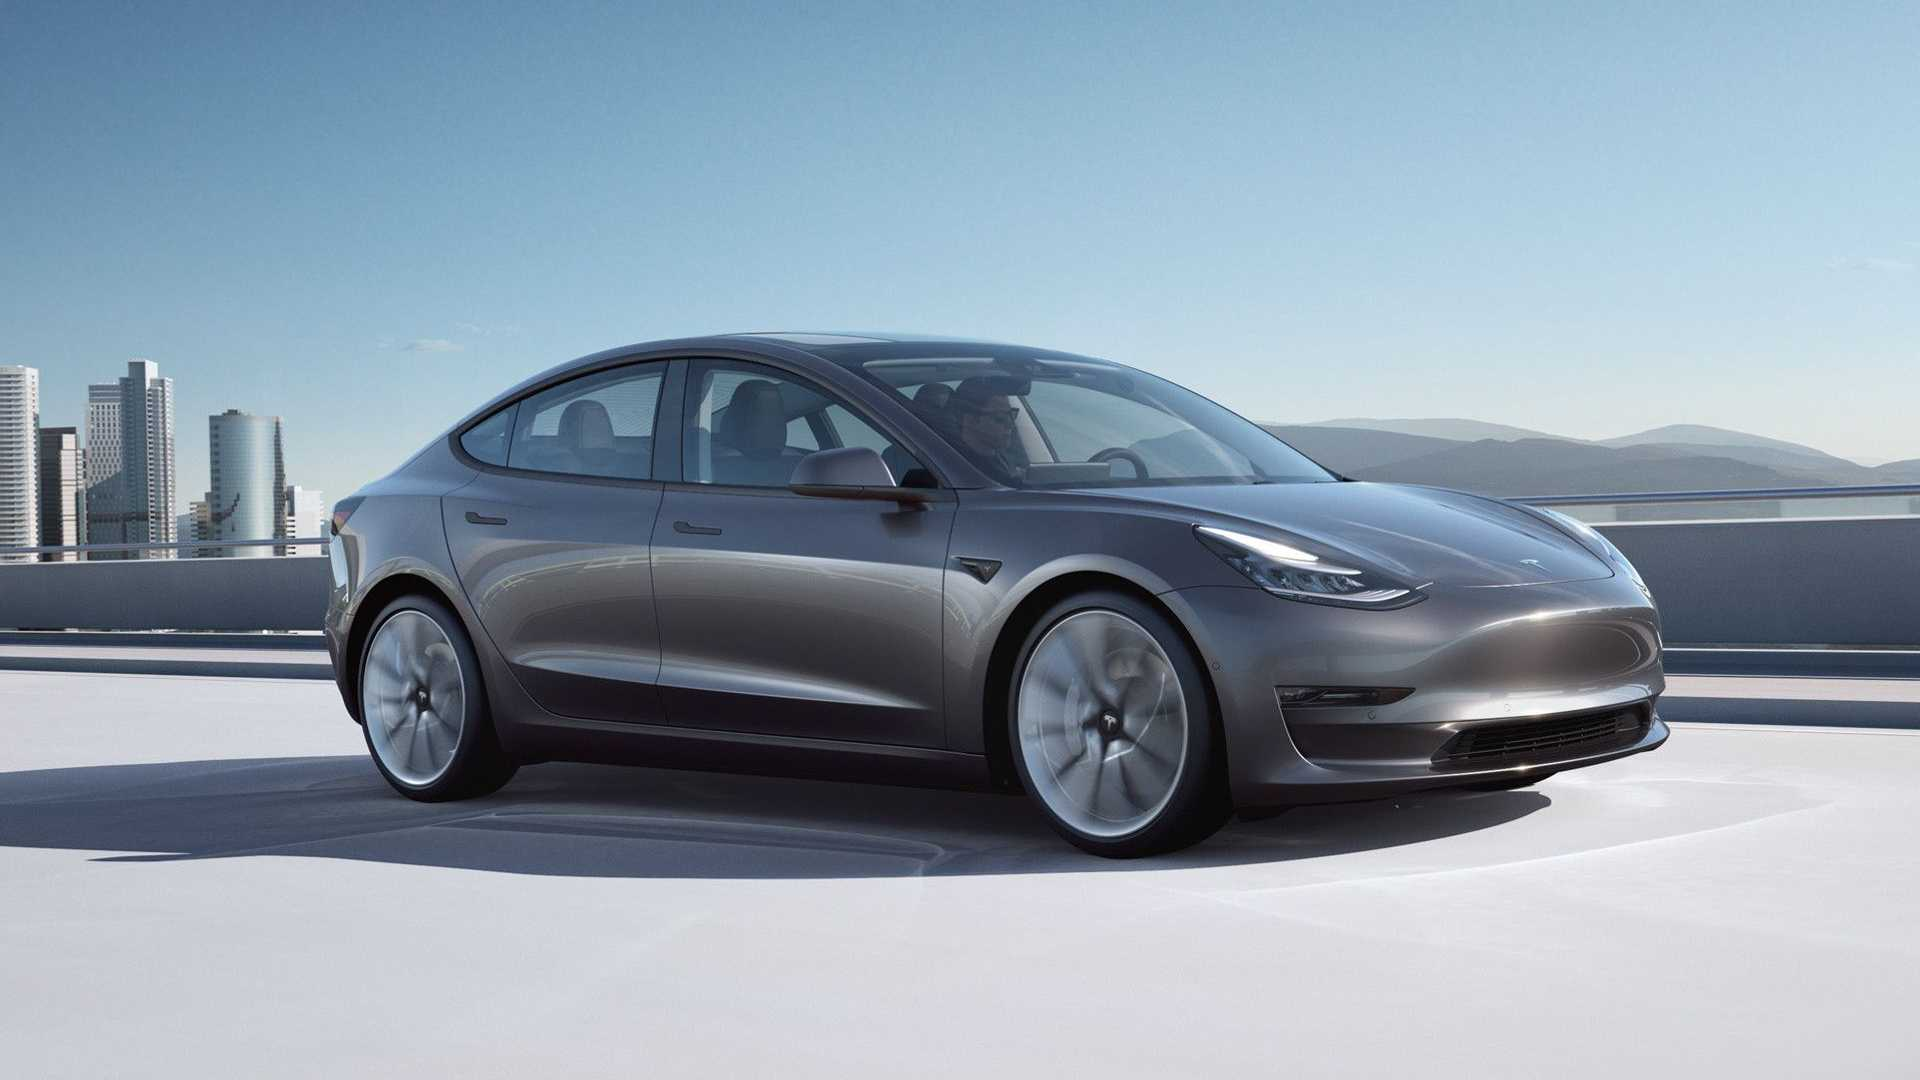 France: Plug-In Electric Car Sales Quadrupled In March 2021